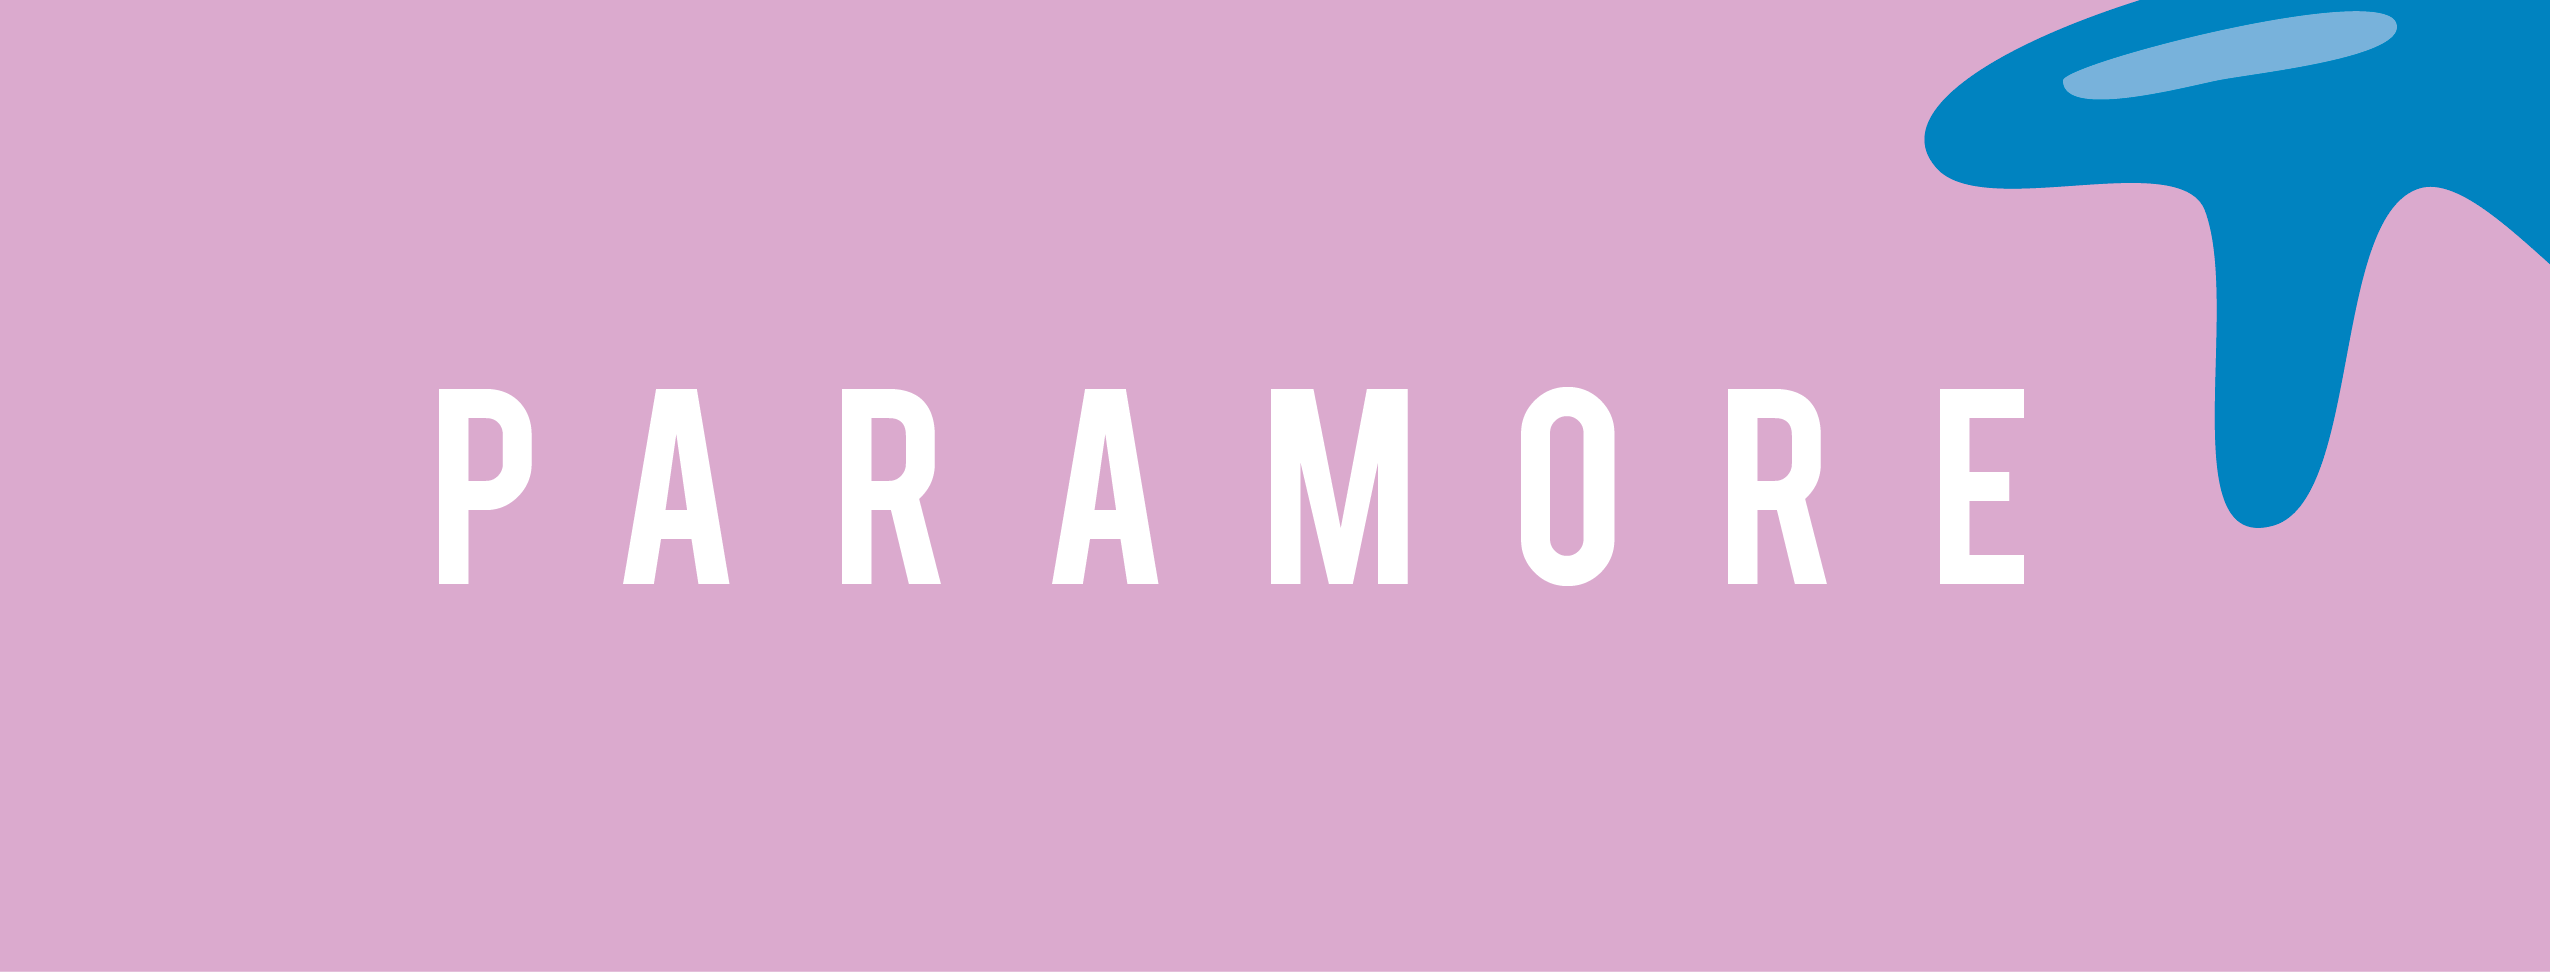 Paramore's 'After Laughter' finds hope in heartbreak ...